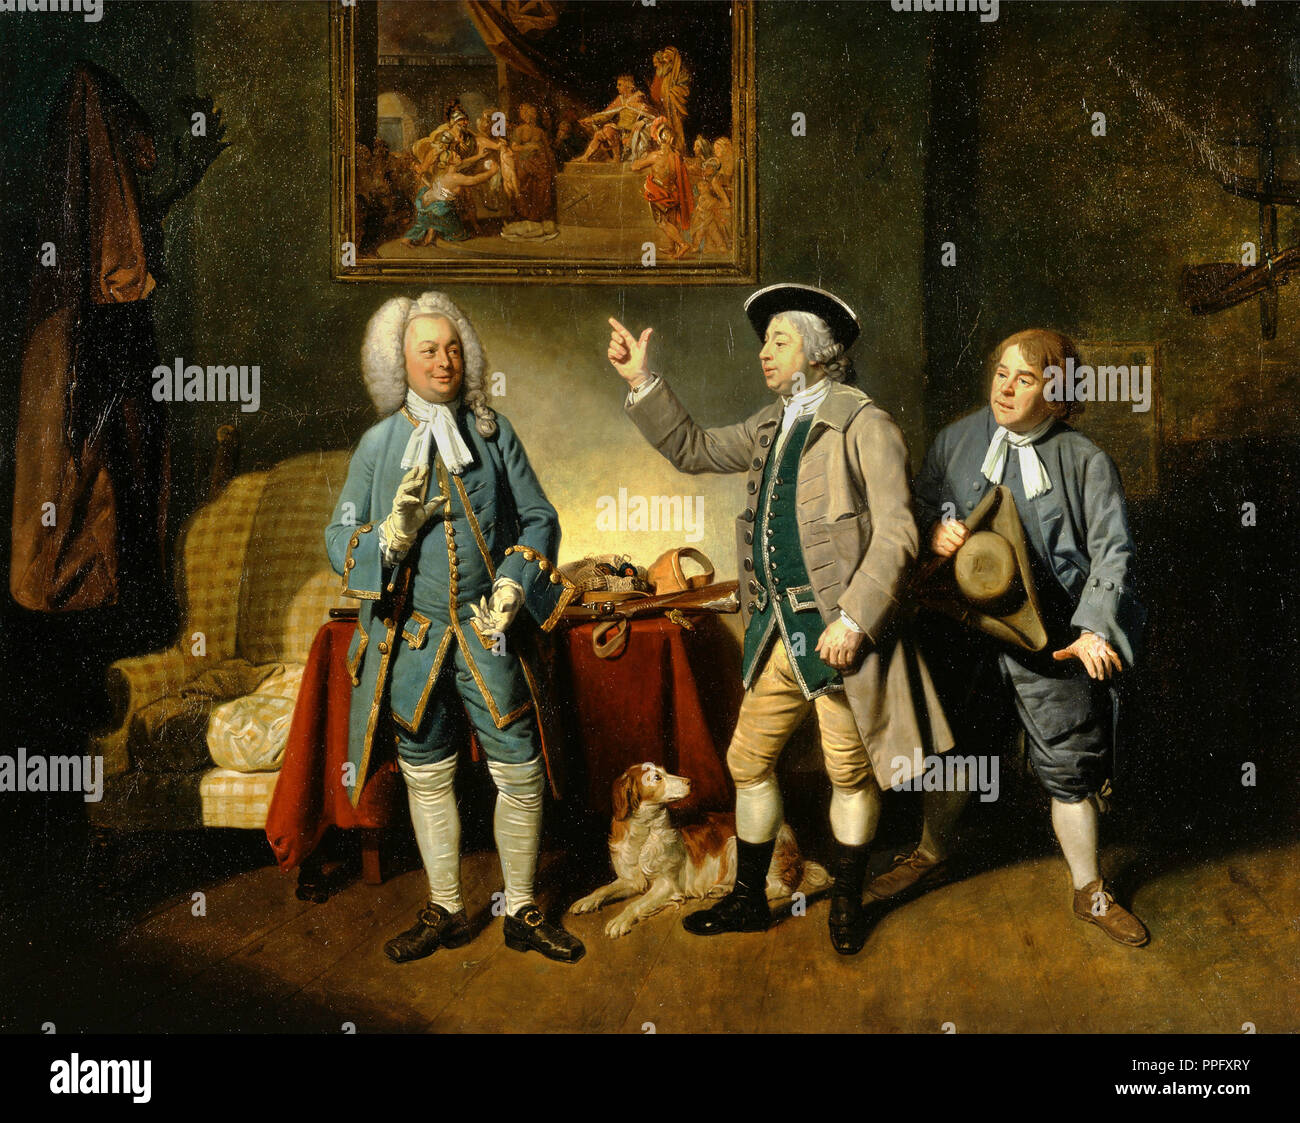 Johann Zoffany - Edward Shuter, John Beard, and John Dunstall in Isaac Bickerstaffe's 'Love in a Village'. 1767 Oil on canvas. Yale Center for British - Stock Image